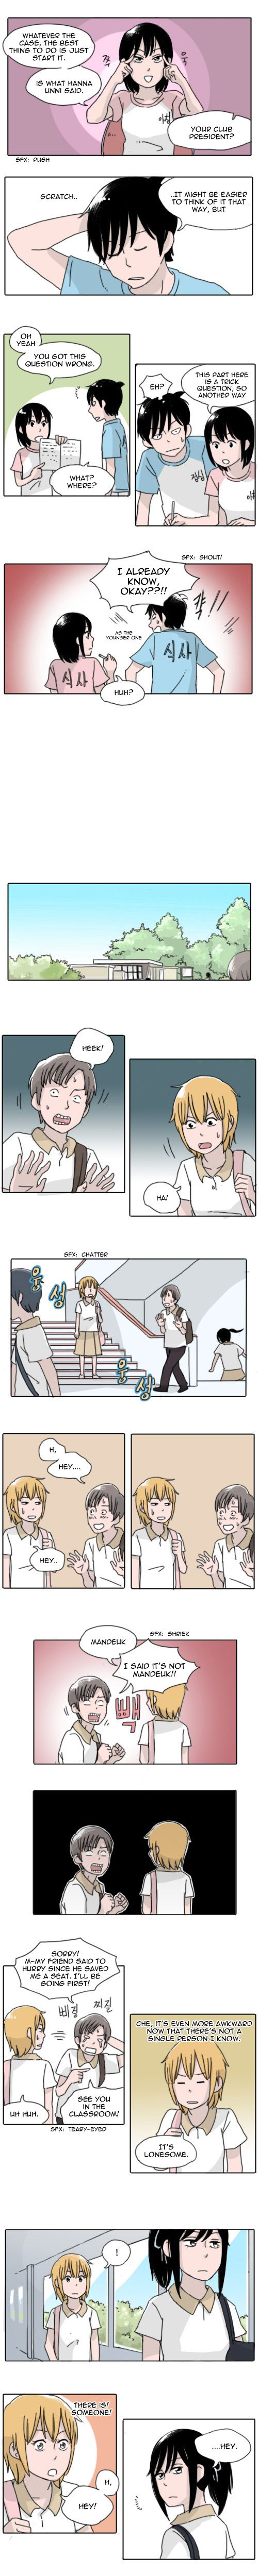 Ties of Compassion 67 Page 2